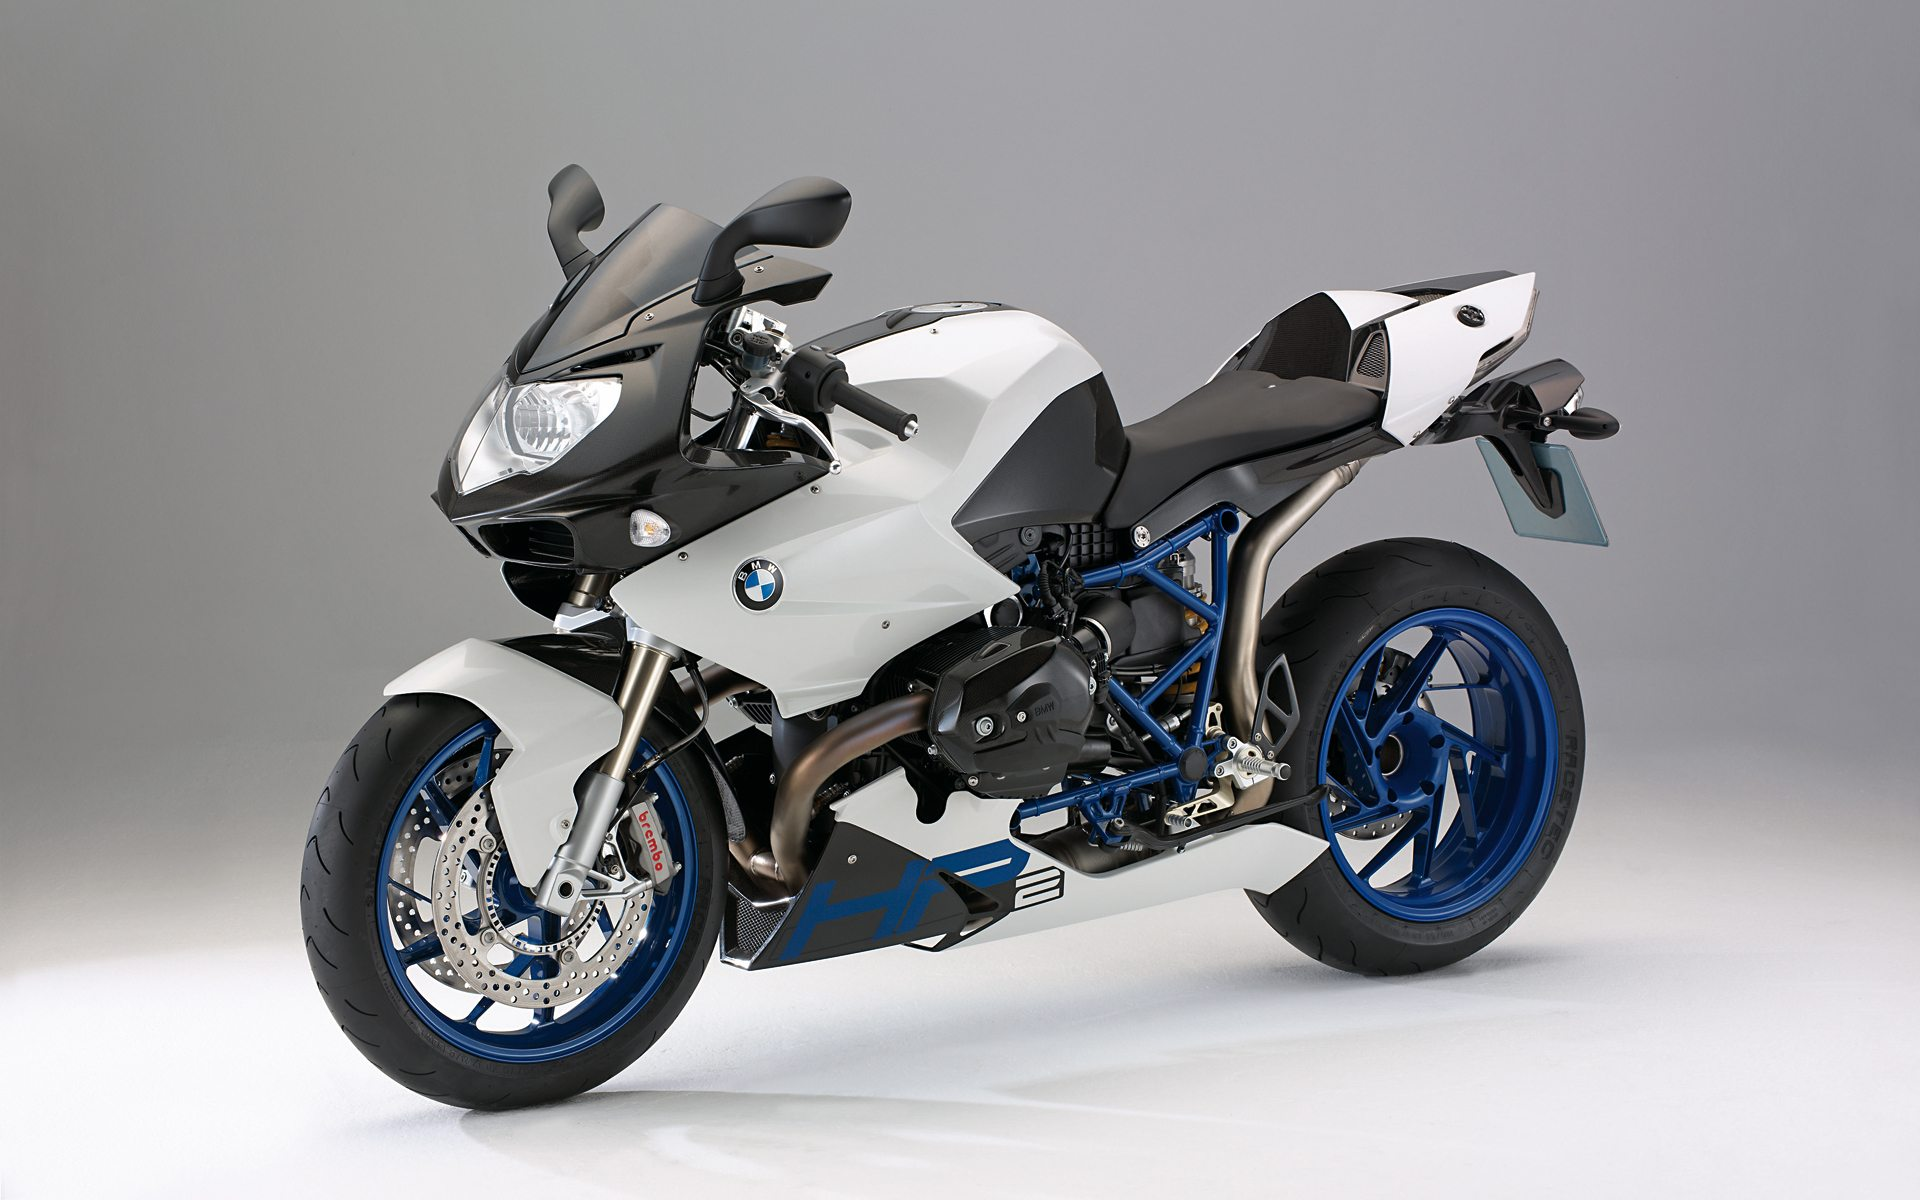 Download Bicycle Wallpapers For Pc: 1920x1200 BMW H2P SPORT BIKE Desktop PC And Mac Wallpaper